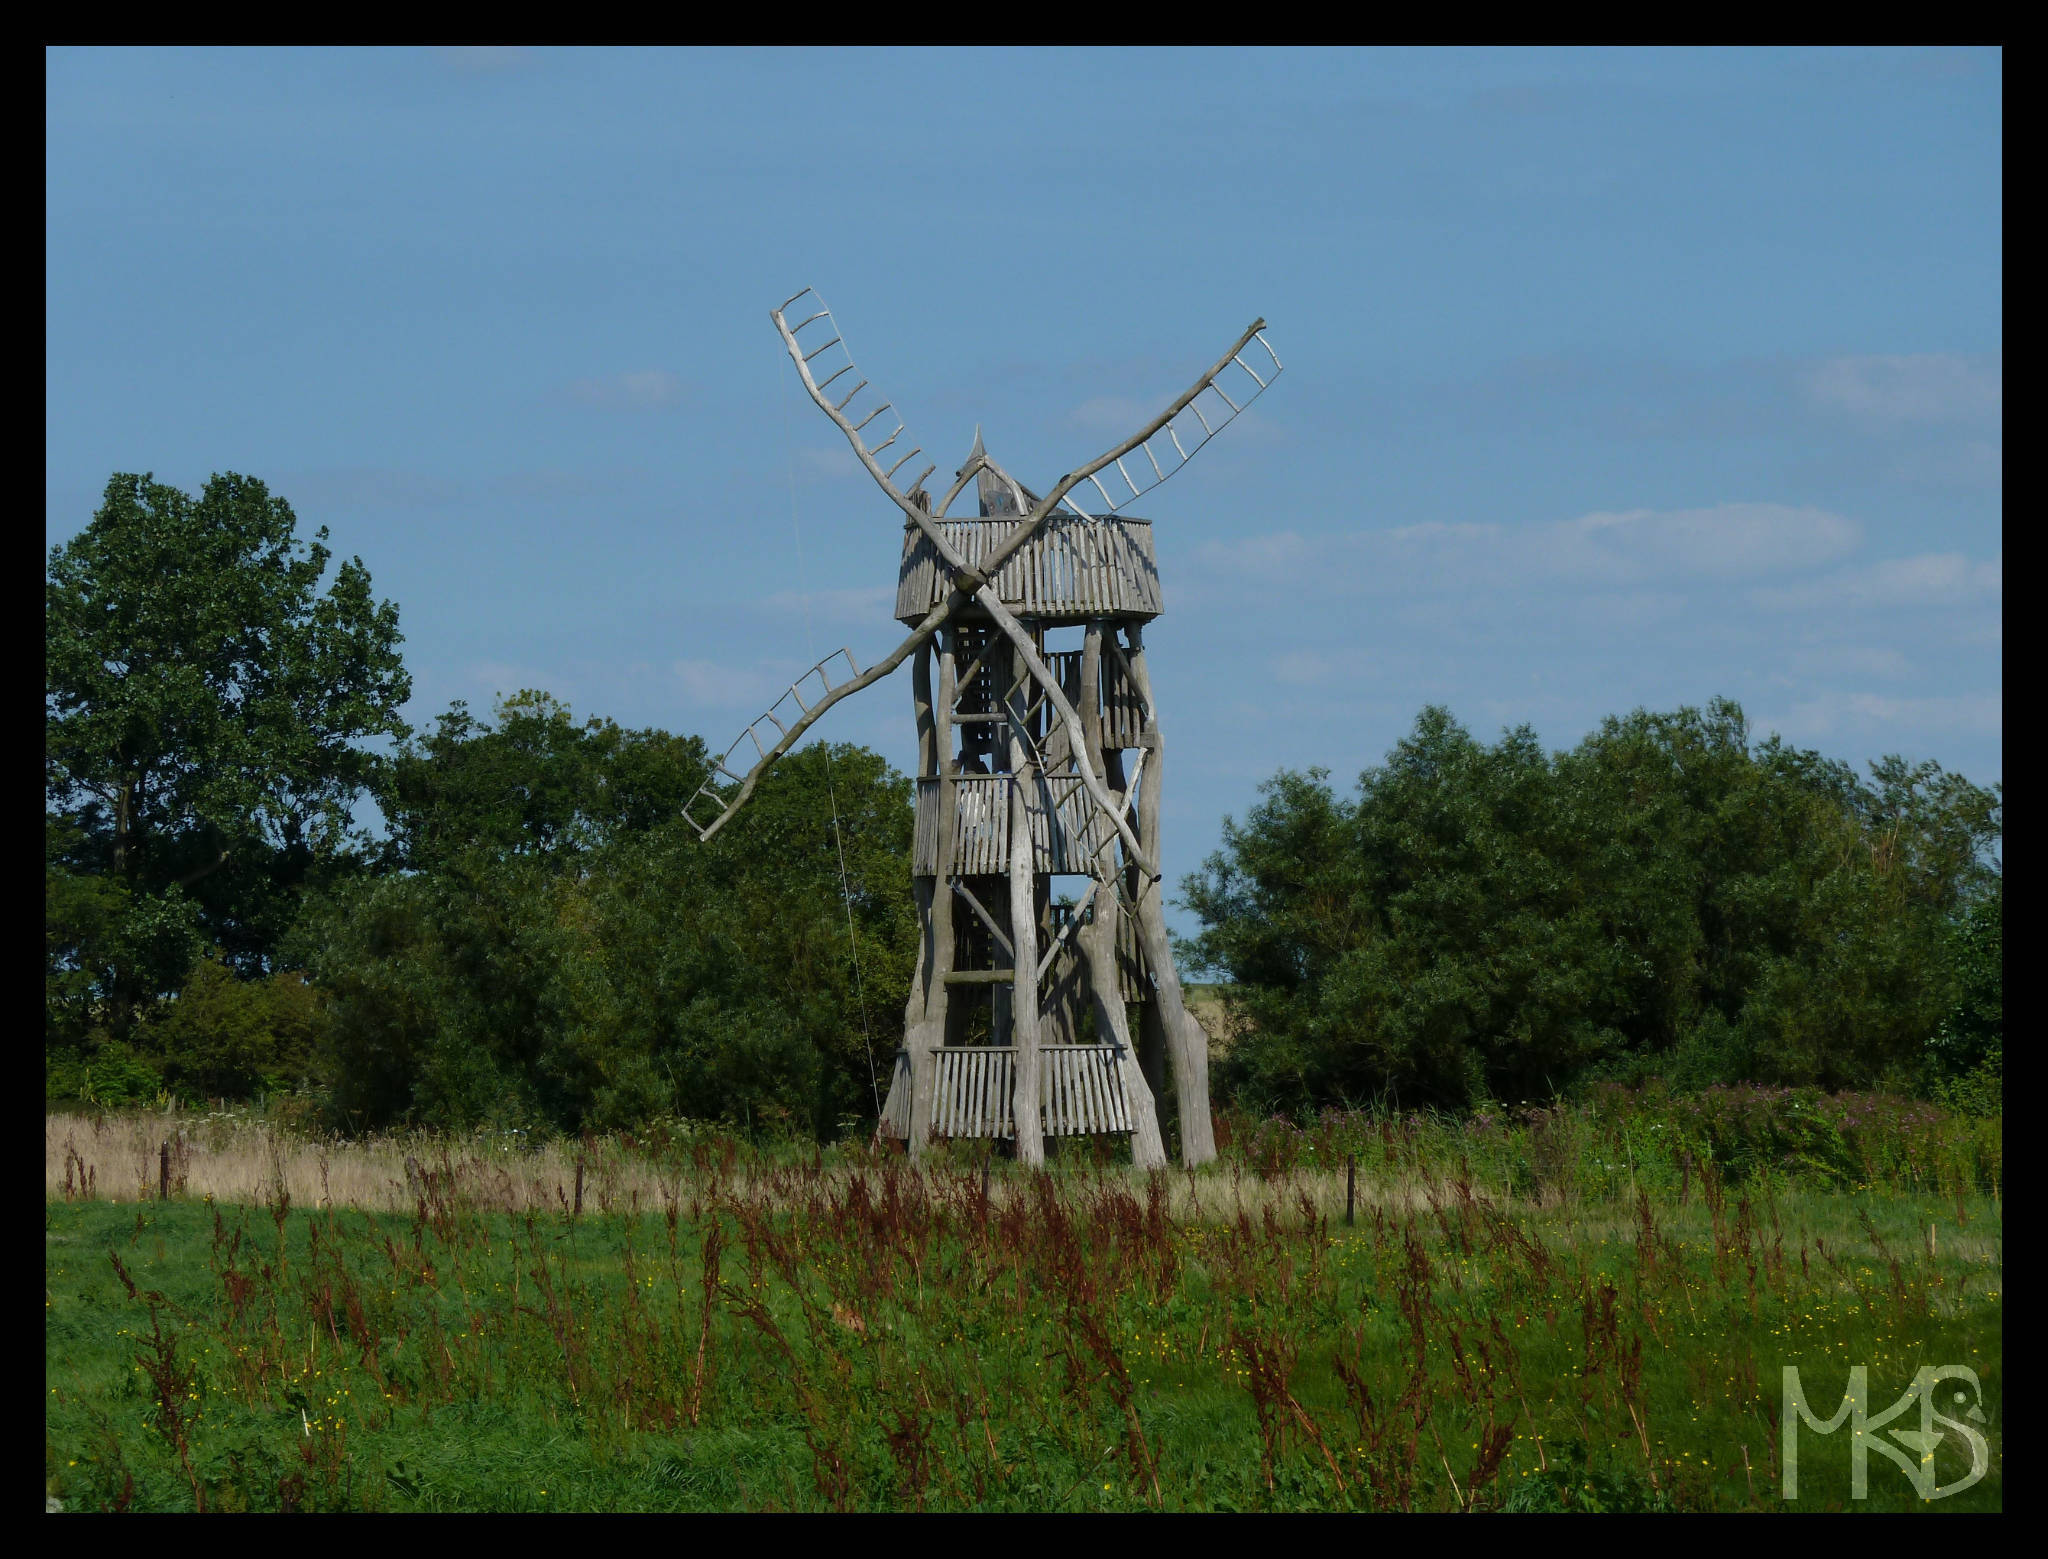 Old windmill in Texel